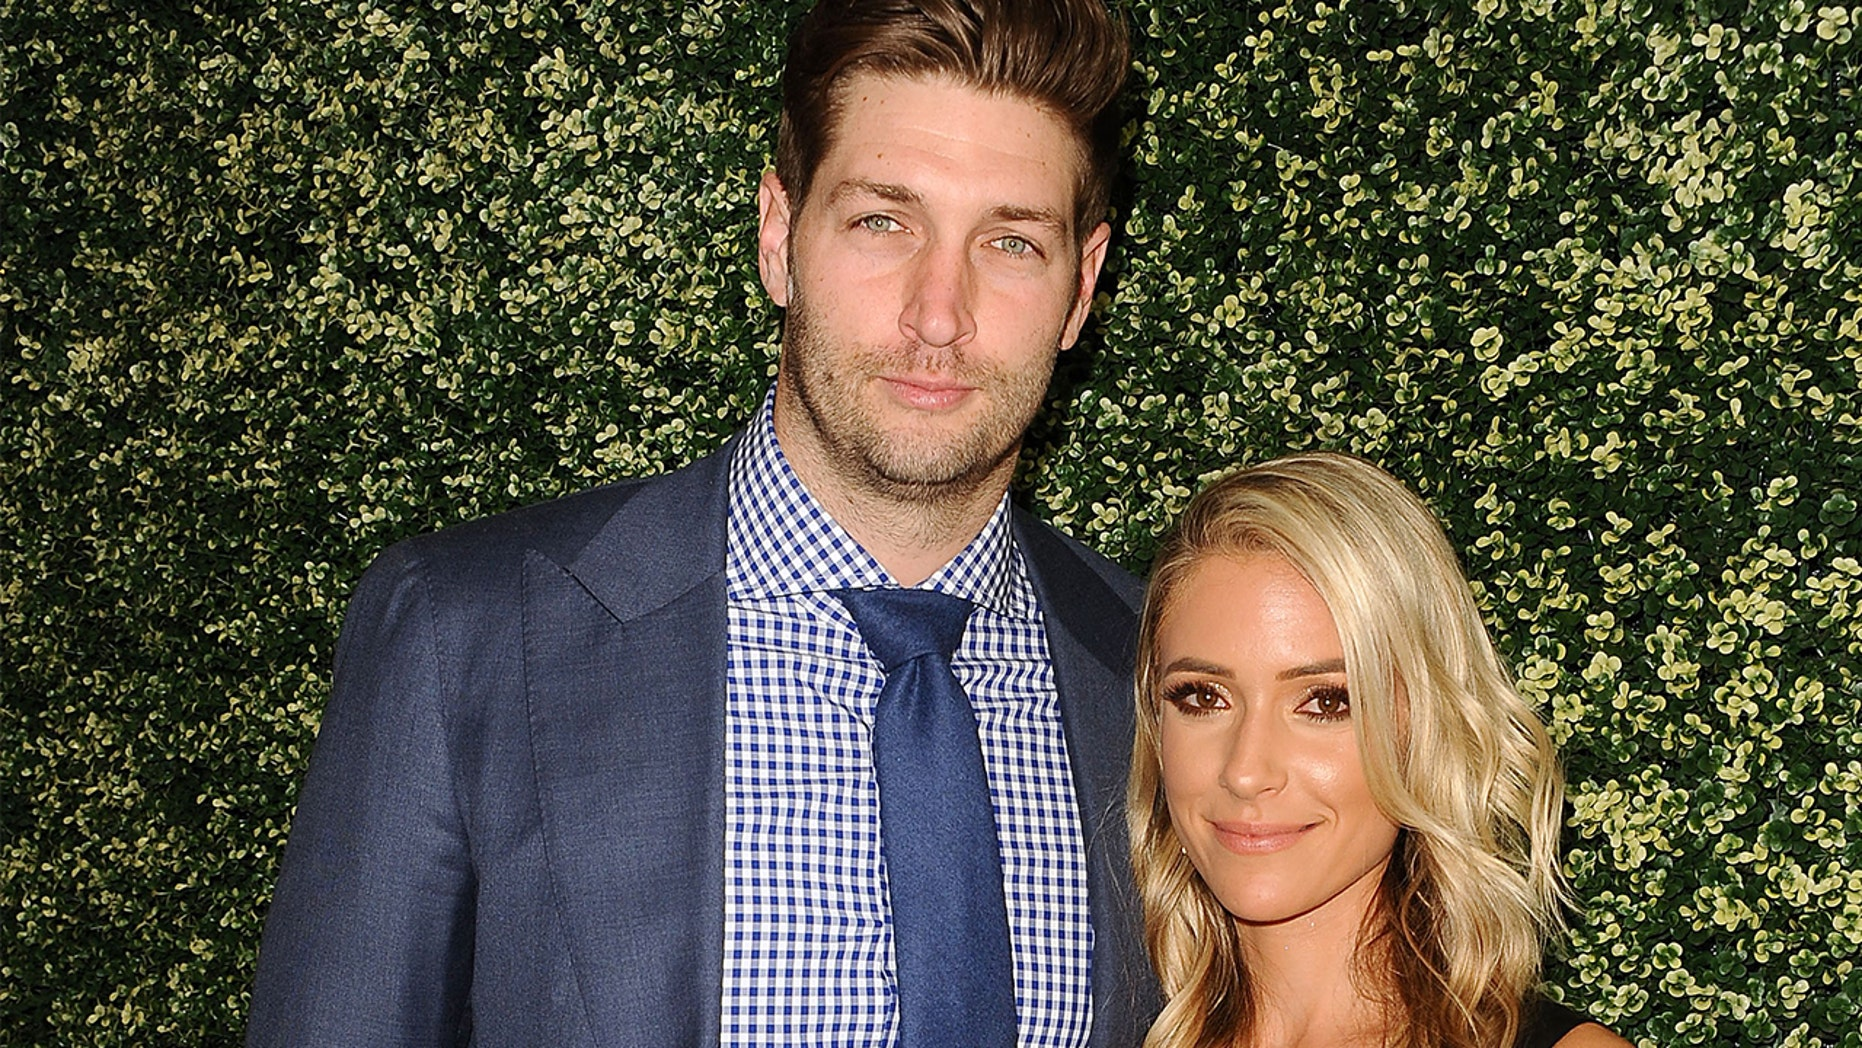 Westlake Legal Group jay-cutler-kristin-cavallari- Kristin Cavallari reacts to fans' responses on Jay Cutler unclogging her milk ducts: 'You cannot judge' Mariah Haas fox-news/entertainment/events/couples fox news fnc/entertainment fnc article 3ed0e84f-92d8-5724-88f6-0cf19c33da31